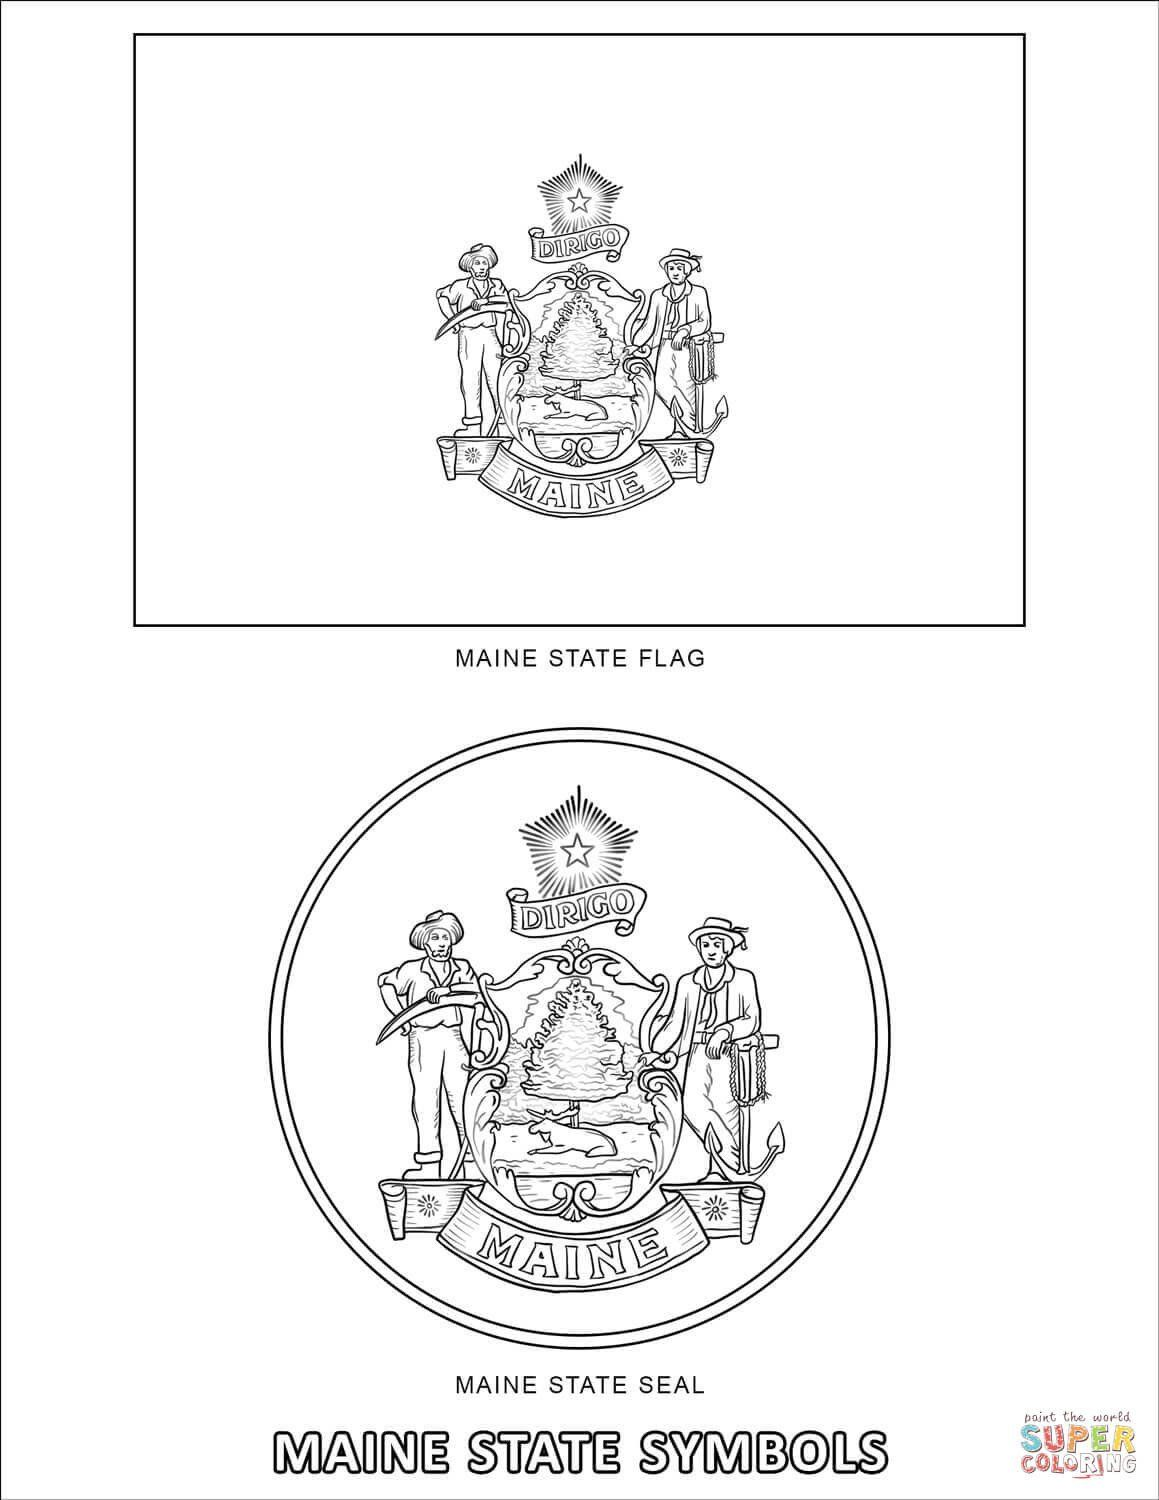 Oklahoma State Flag Coloring Page Maine State Symbols Coloring Page In 2020 Oklahoma State Flag Flag Coloring Pages State Flags